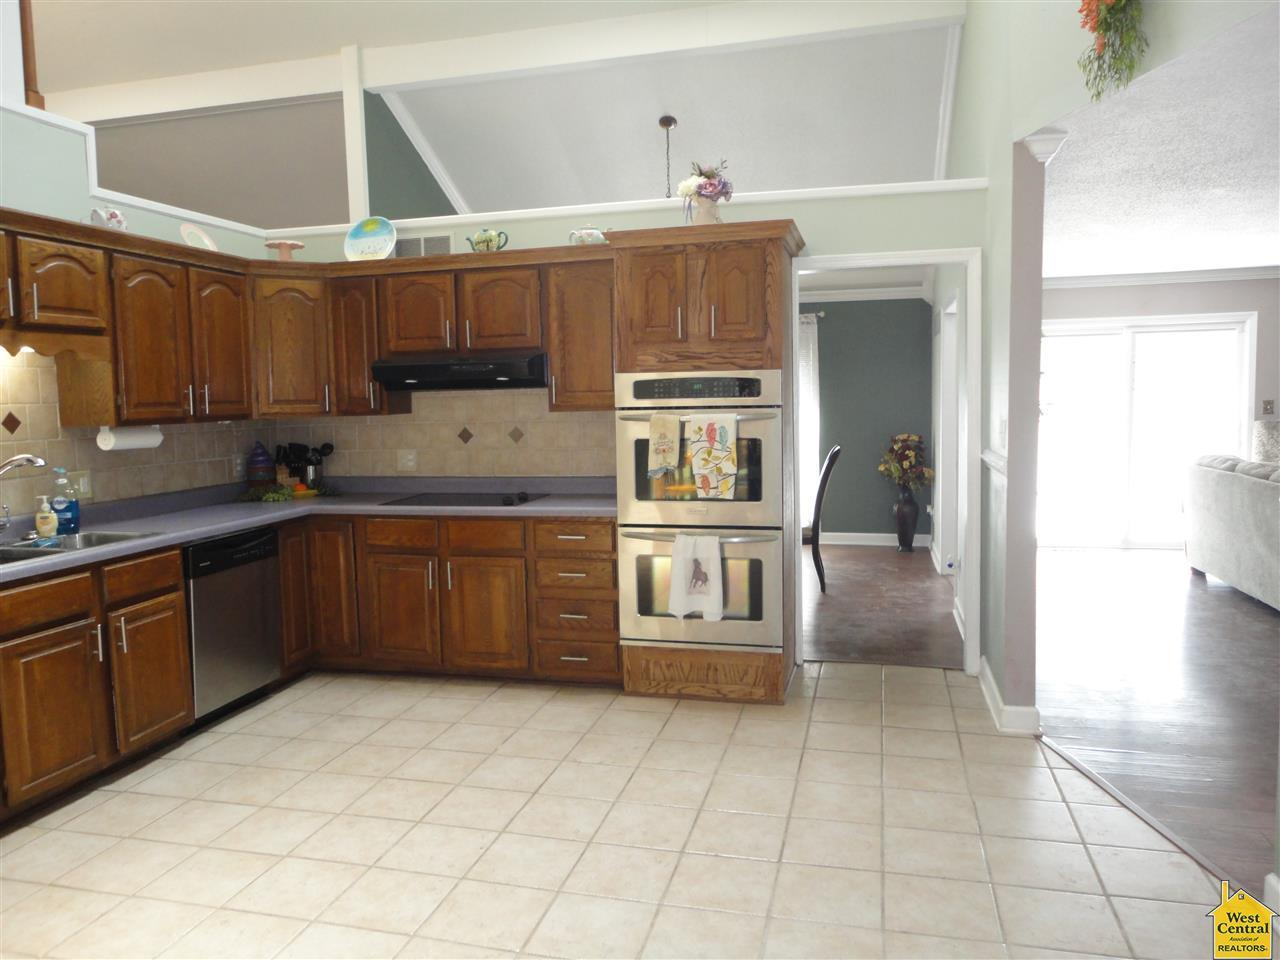 118 s prospect ave for sale sedalia mo trulia country kitchen